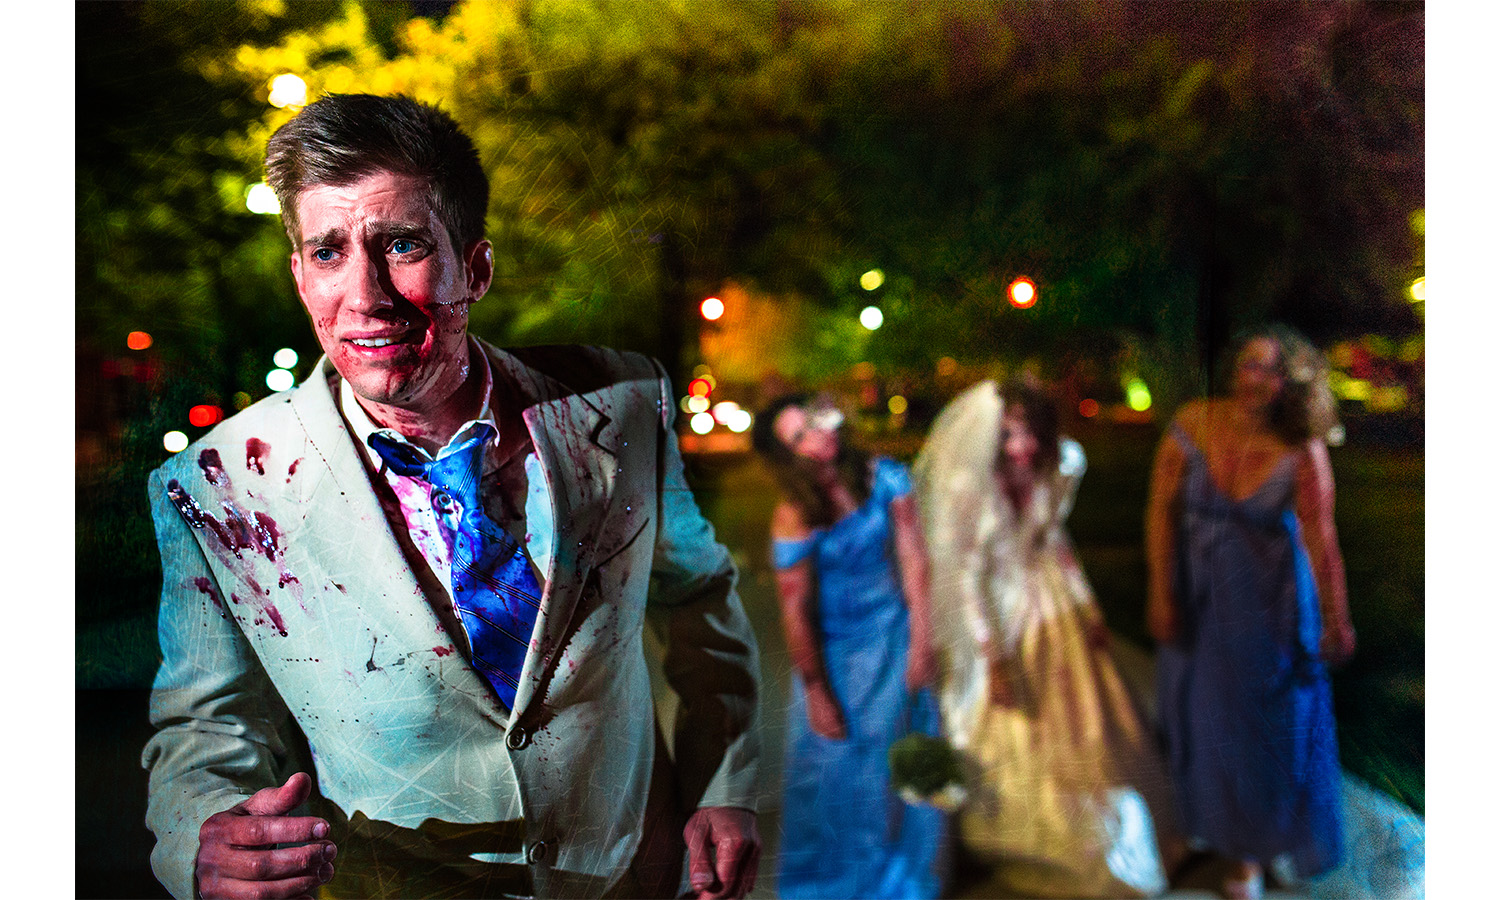 groom runs for life zoombies attack Zombie Wedding